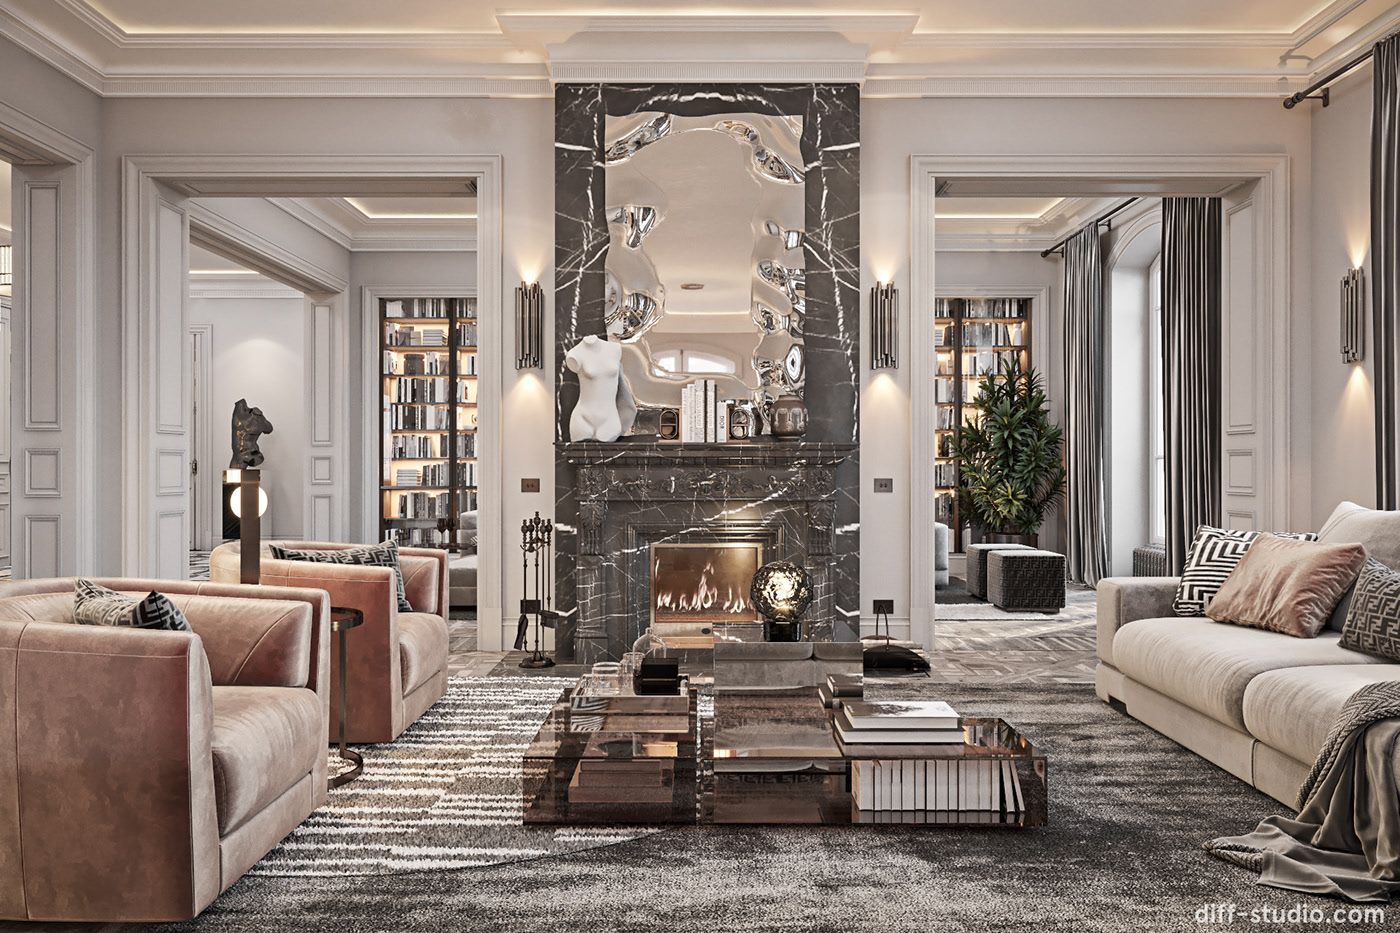 Fabulous Story In Paris On Behance Luxury Home Decor Nyc Interior Design Living Room Design Decor